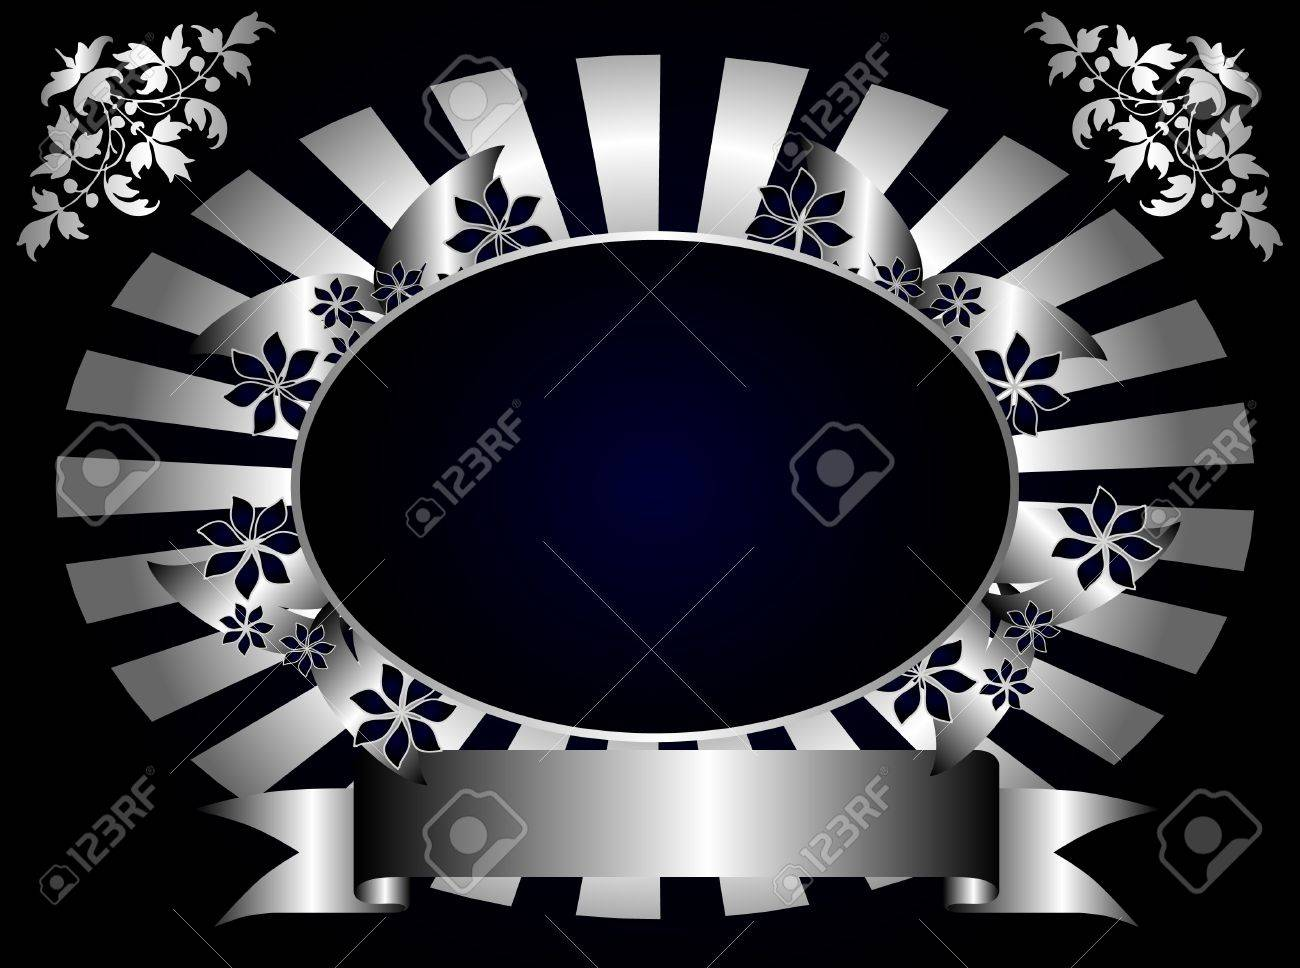 A gold floral fan effect design with room for text on a royal blue background Stock Vector - 8420682